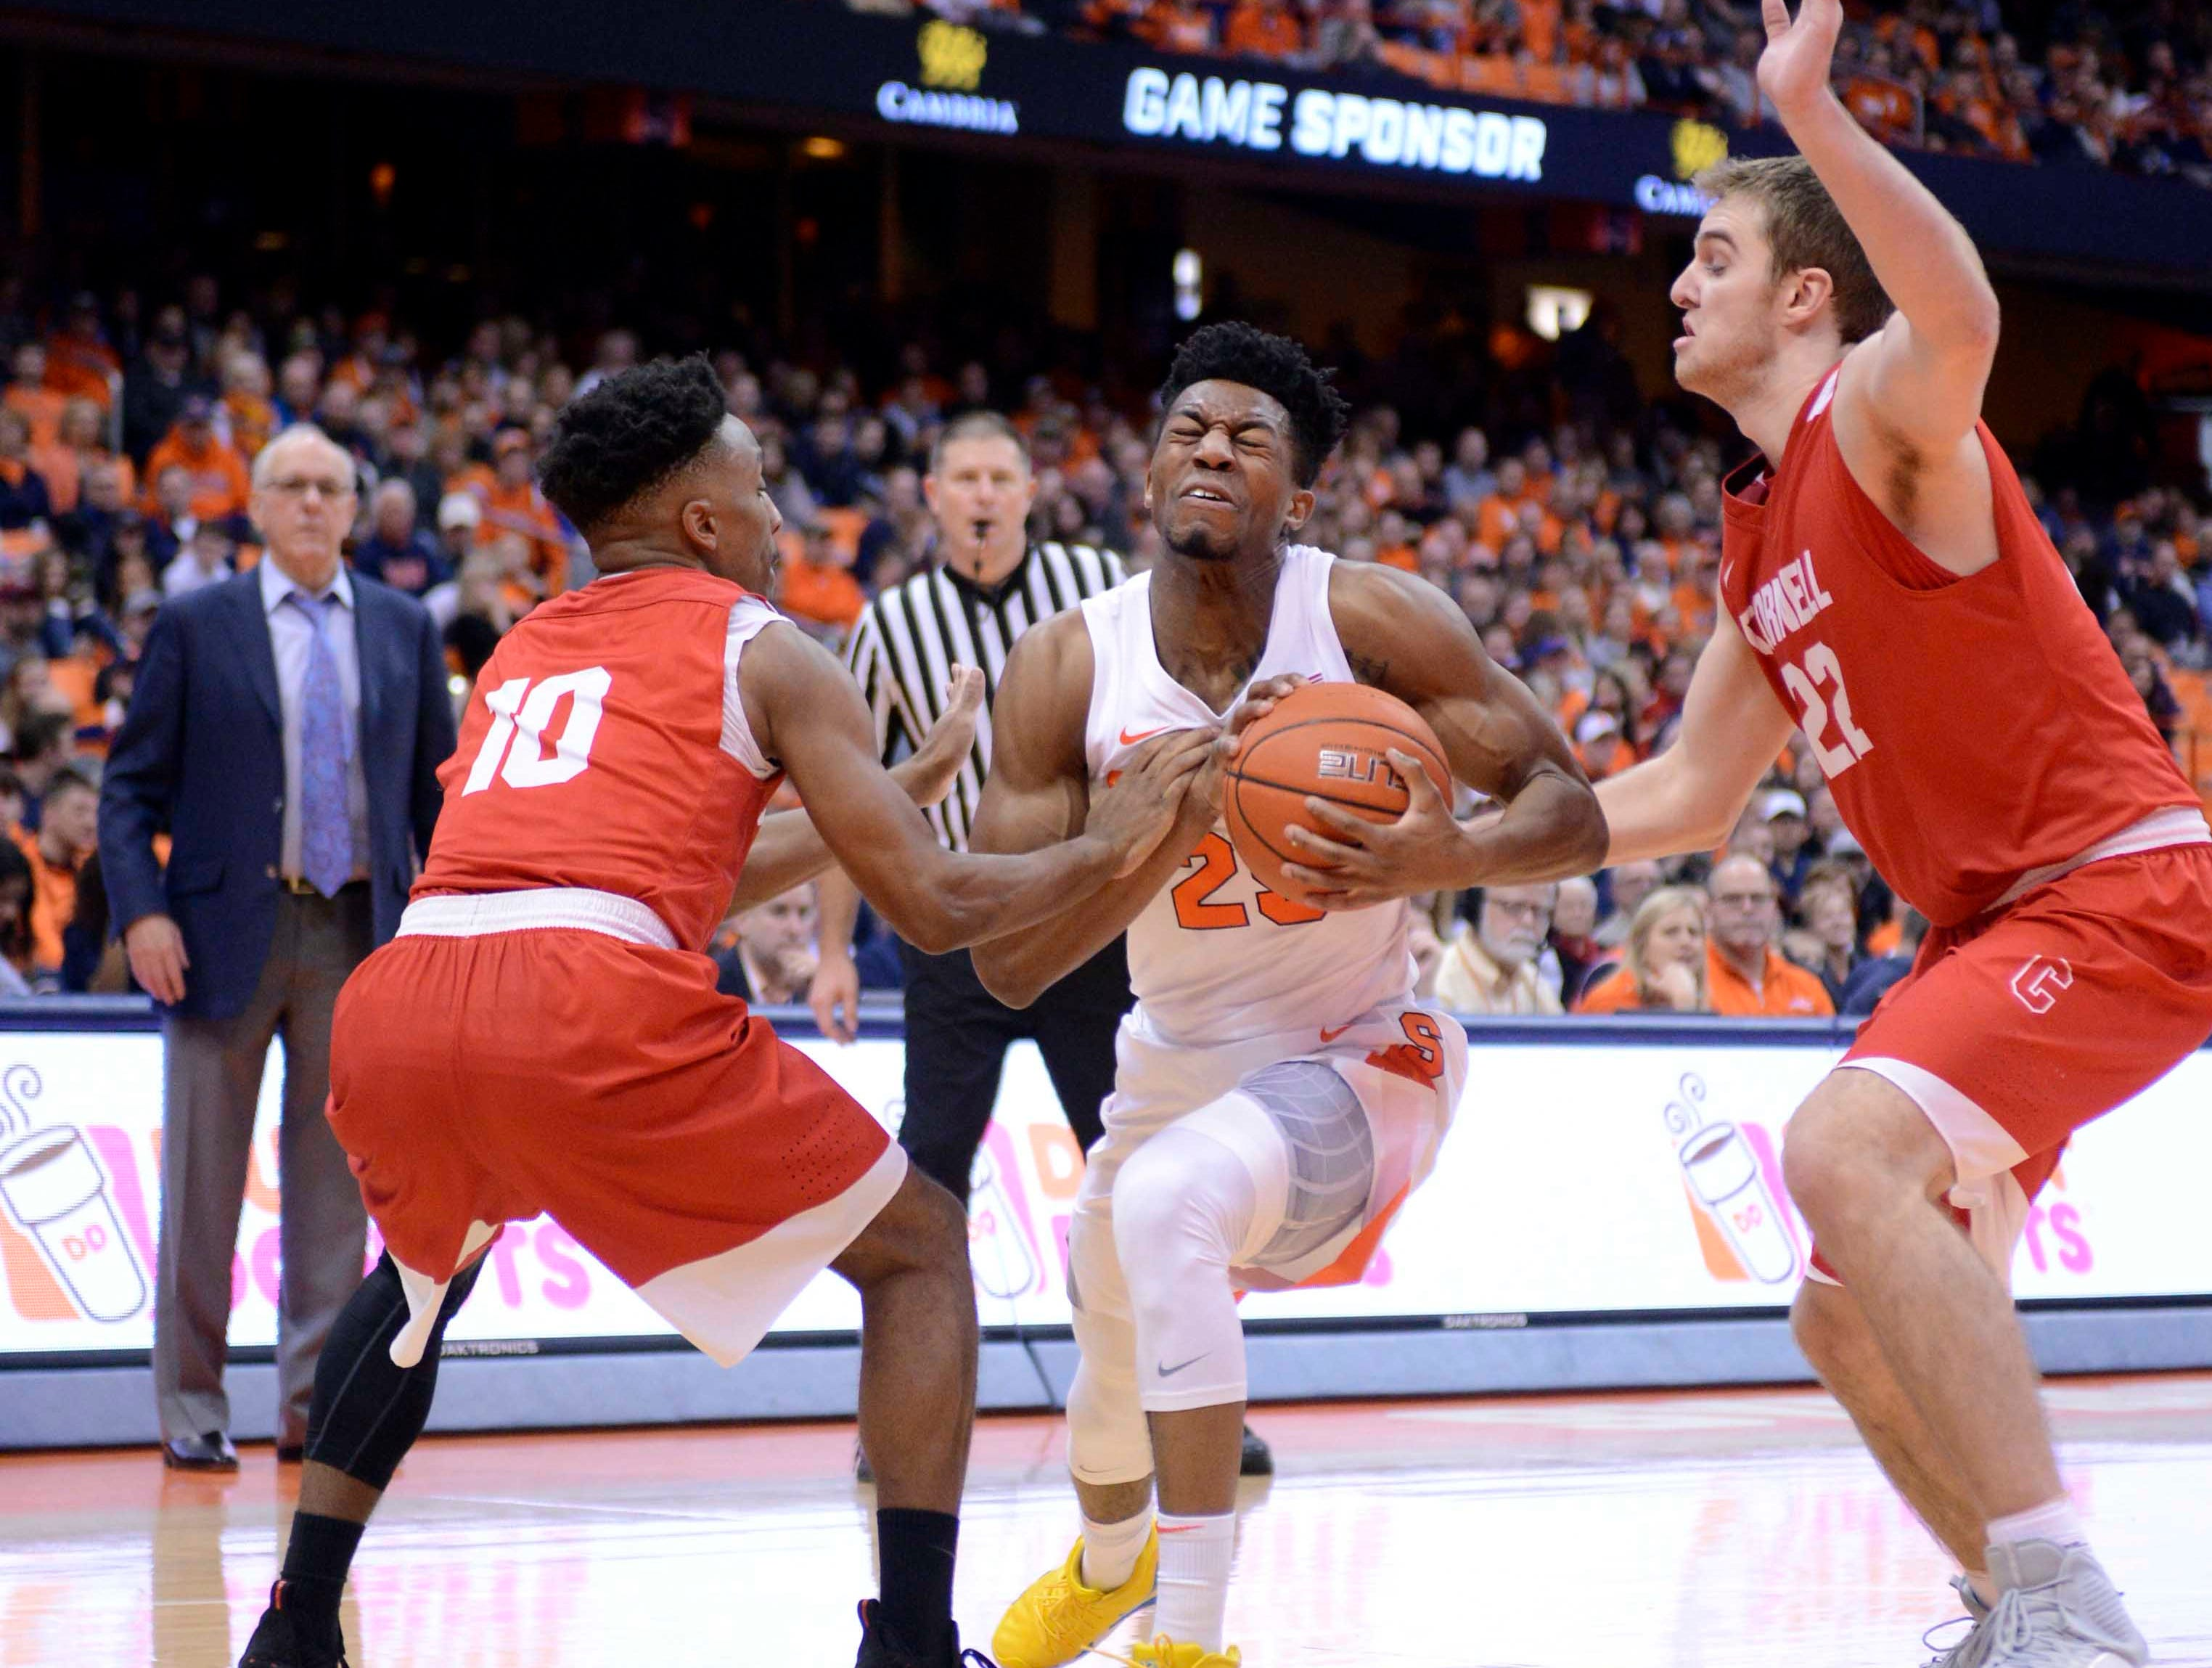 Dec 1, 2018; Syracuse, NY, USA; Syracuse Orange guard Tyus Battle (25) is pressured between Cornell Big Red guard Matt Morgan (10) and forward Josh Warren (22) during the second half at the Carrier Dome. Mandatory Credit: Mark Konezny-USA TODAY Sports